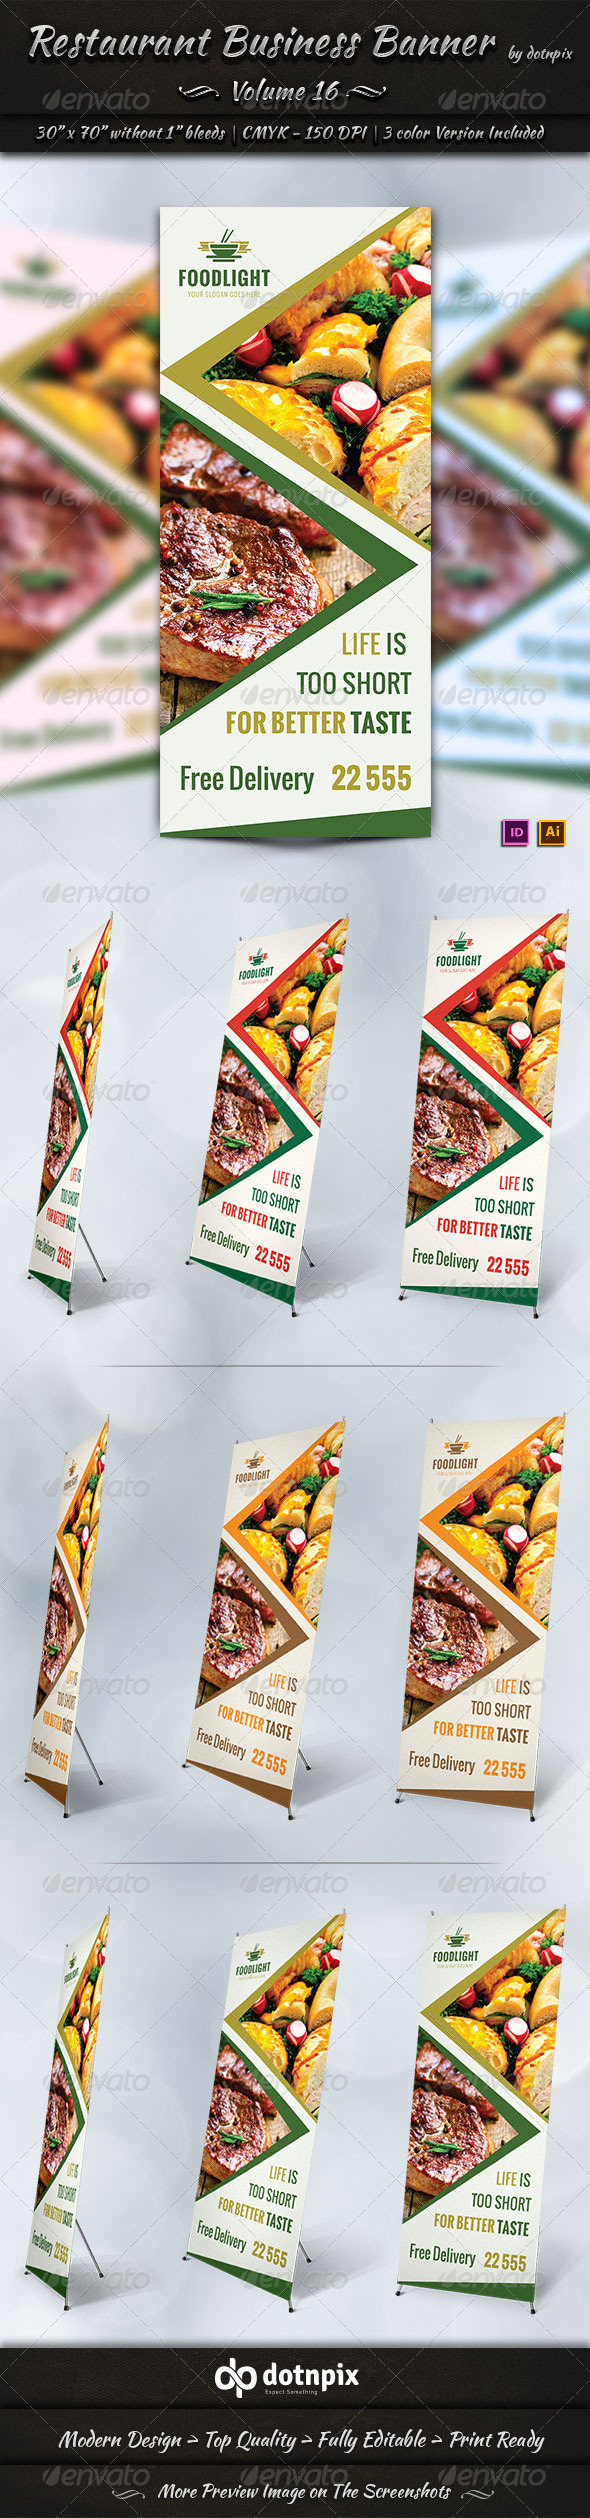 GraphicRiver Restaurant Business Banner Volume 16 7915254